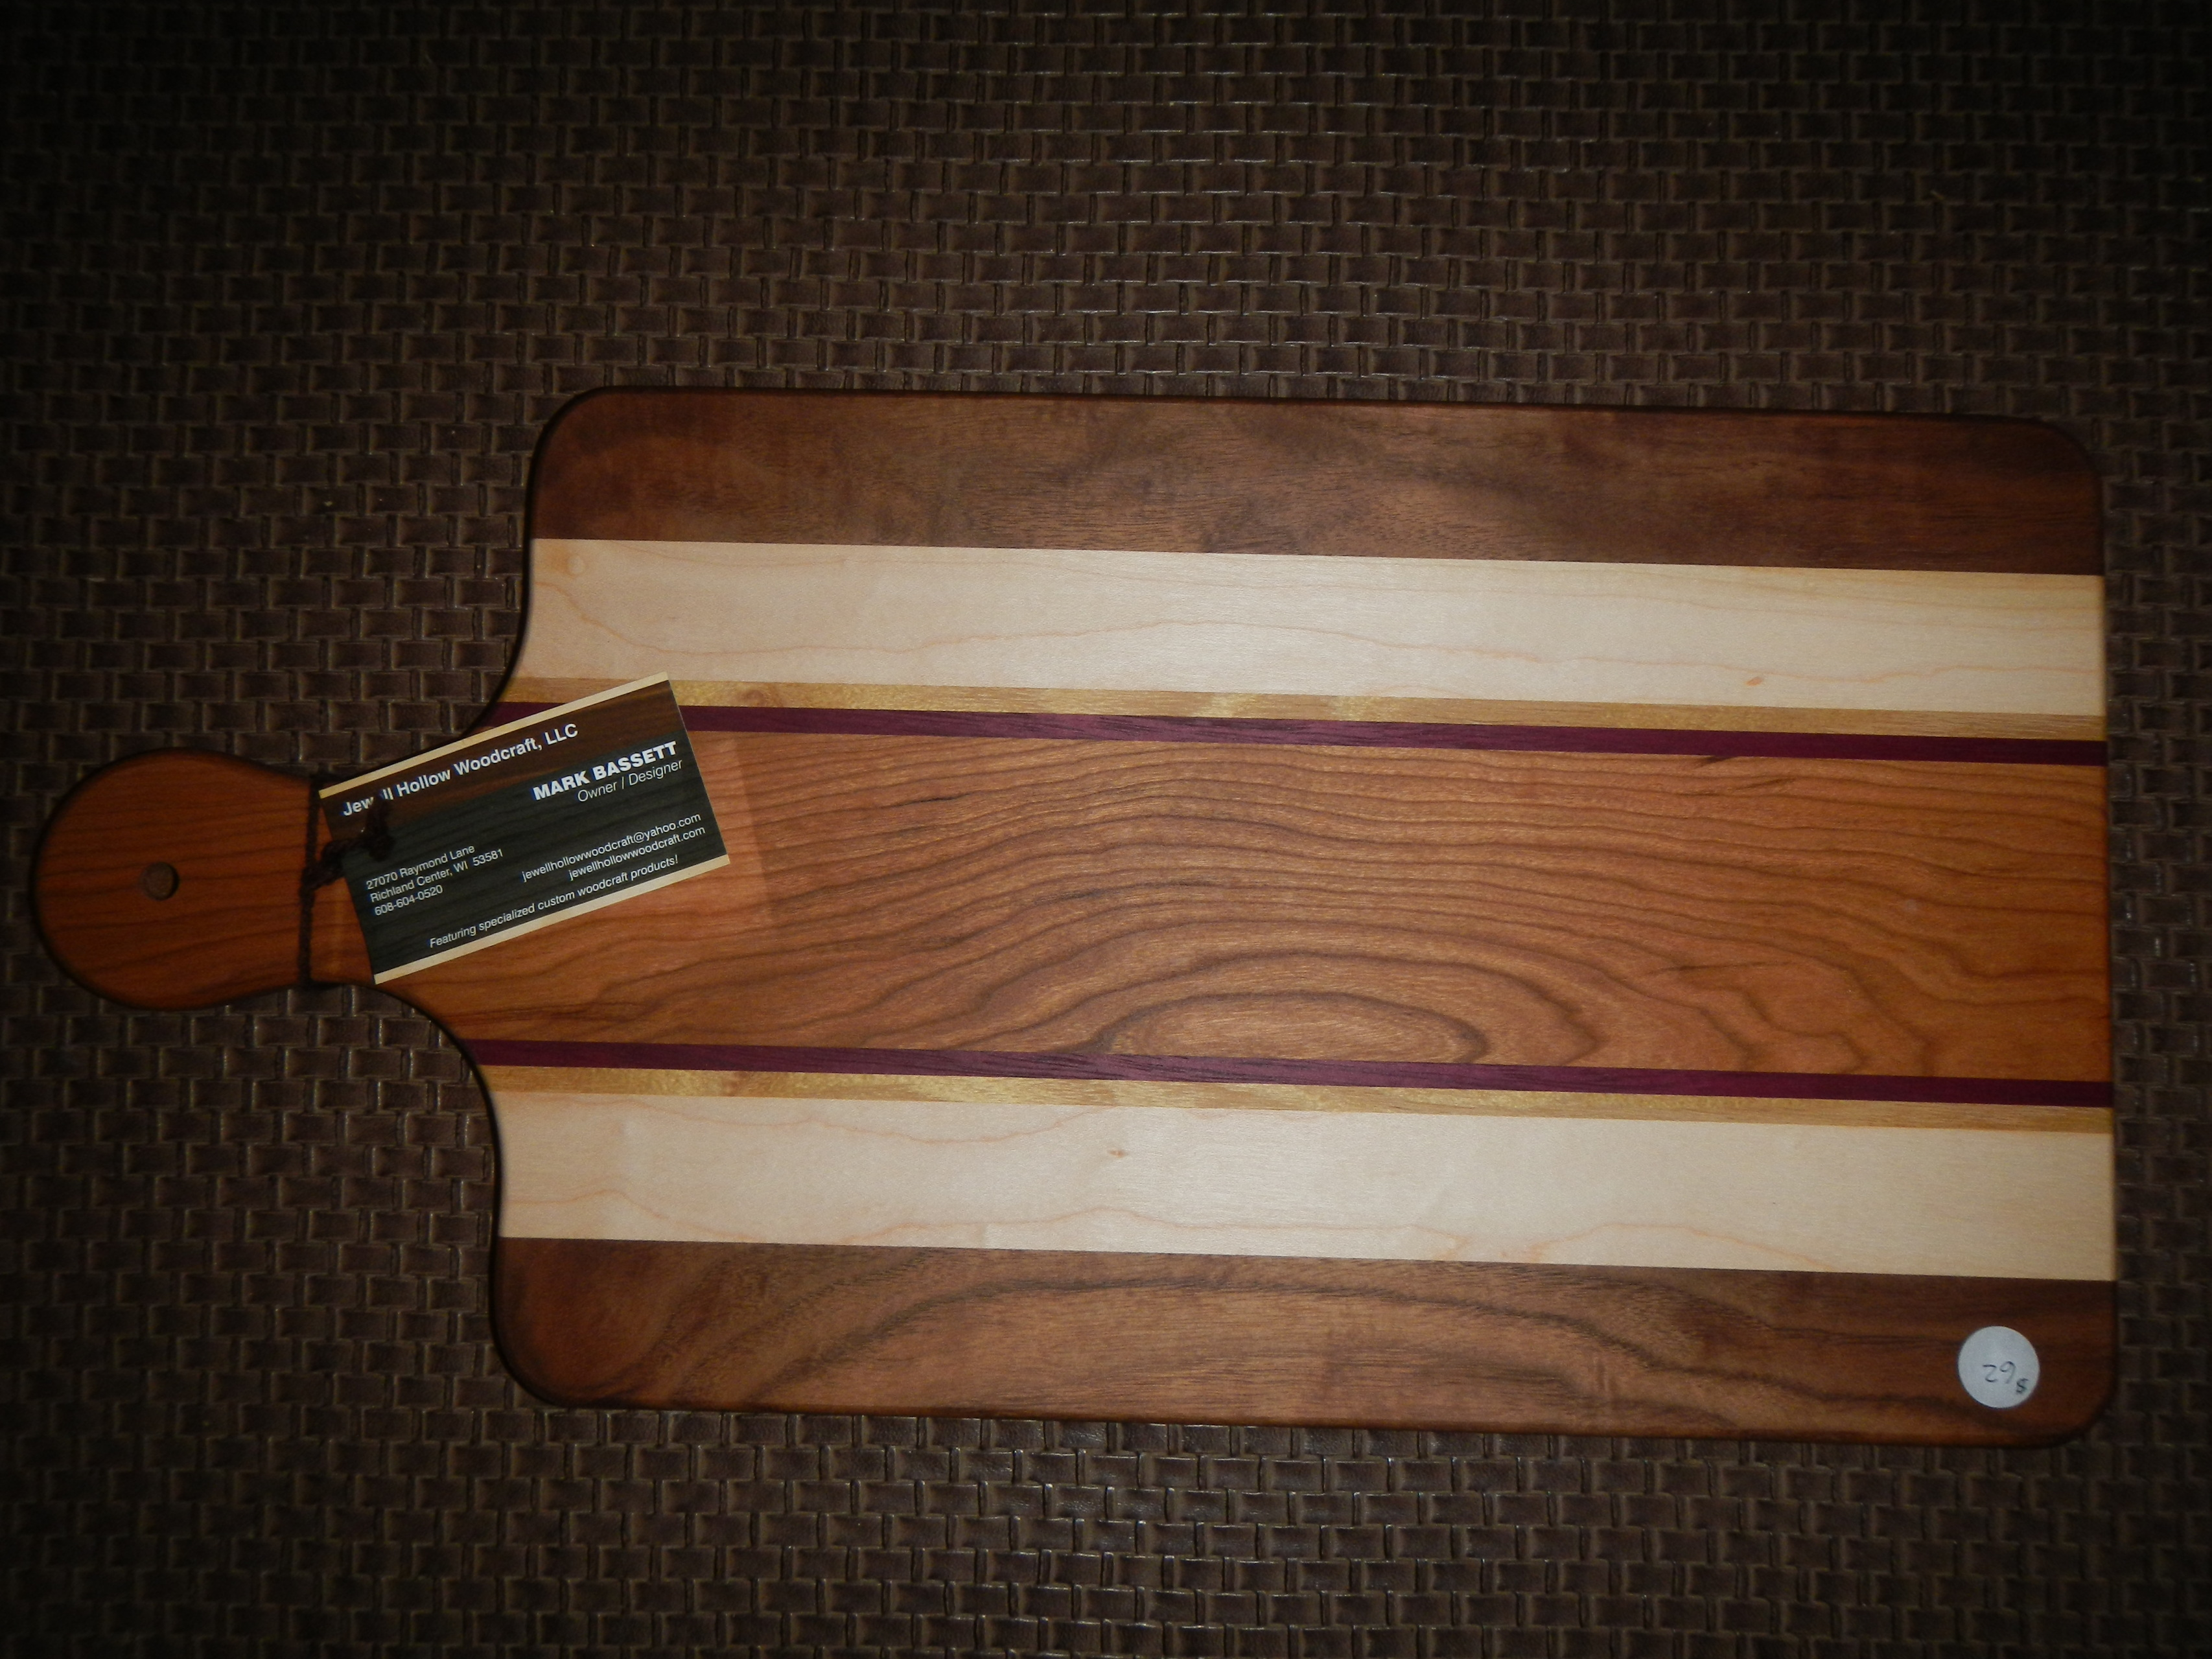 Large Wooden Bread Cutting Board 10x20